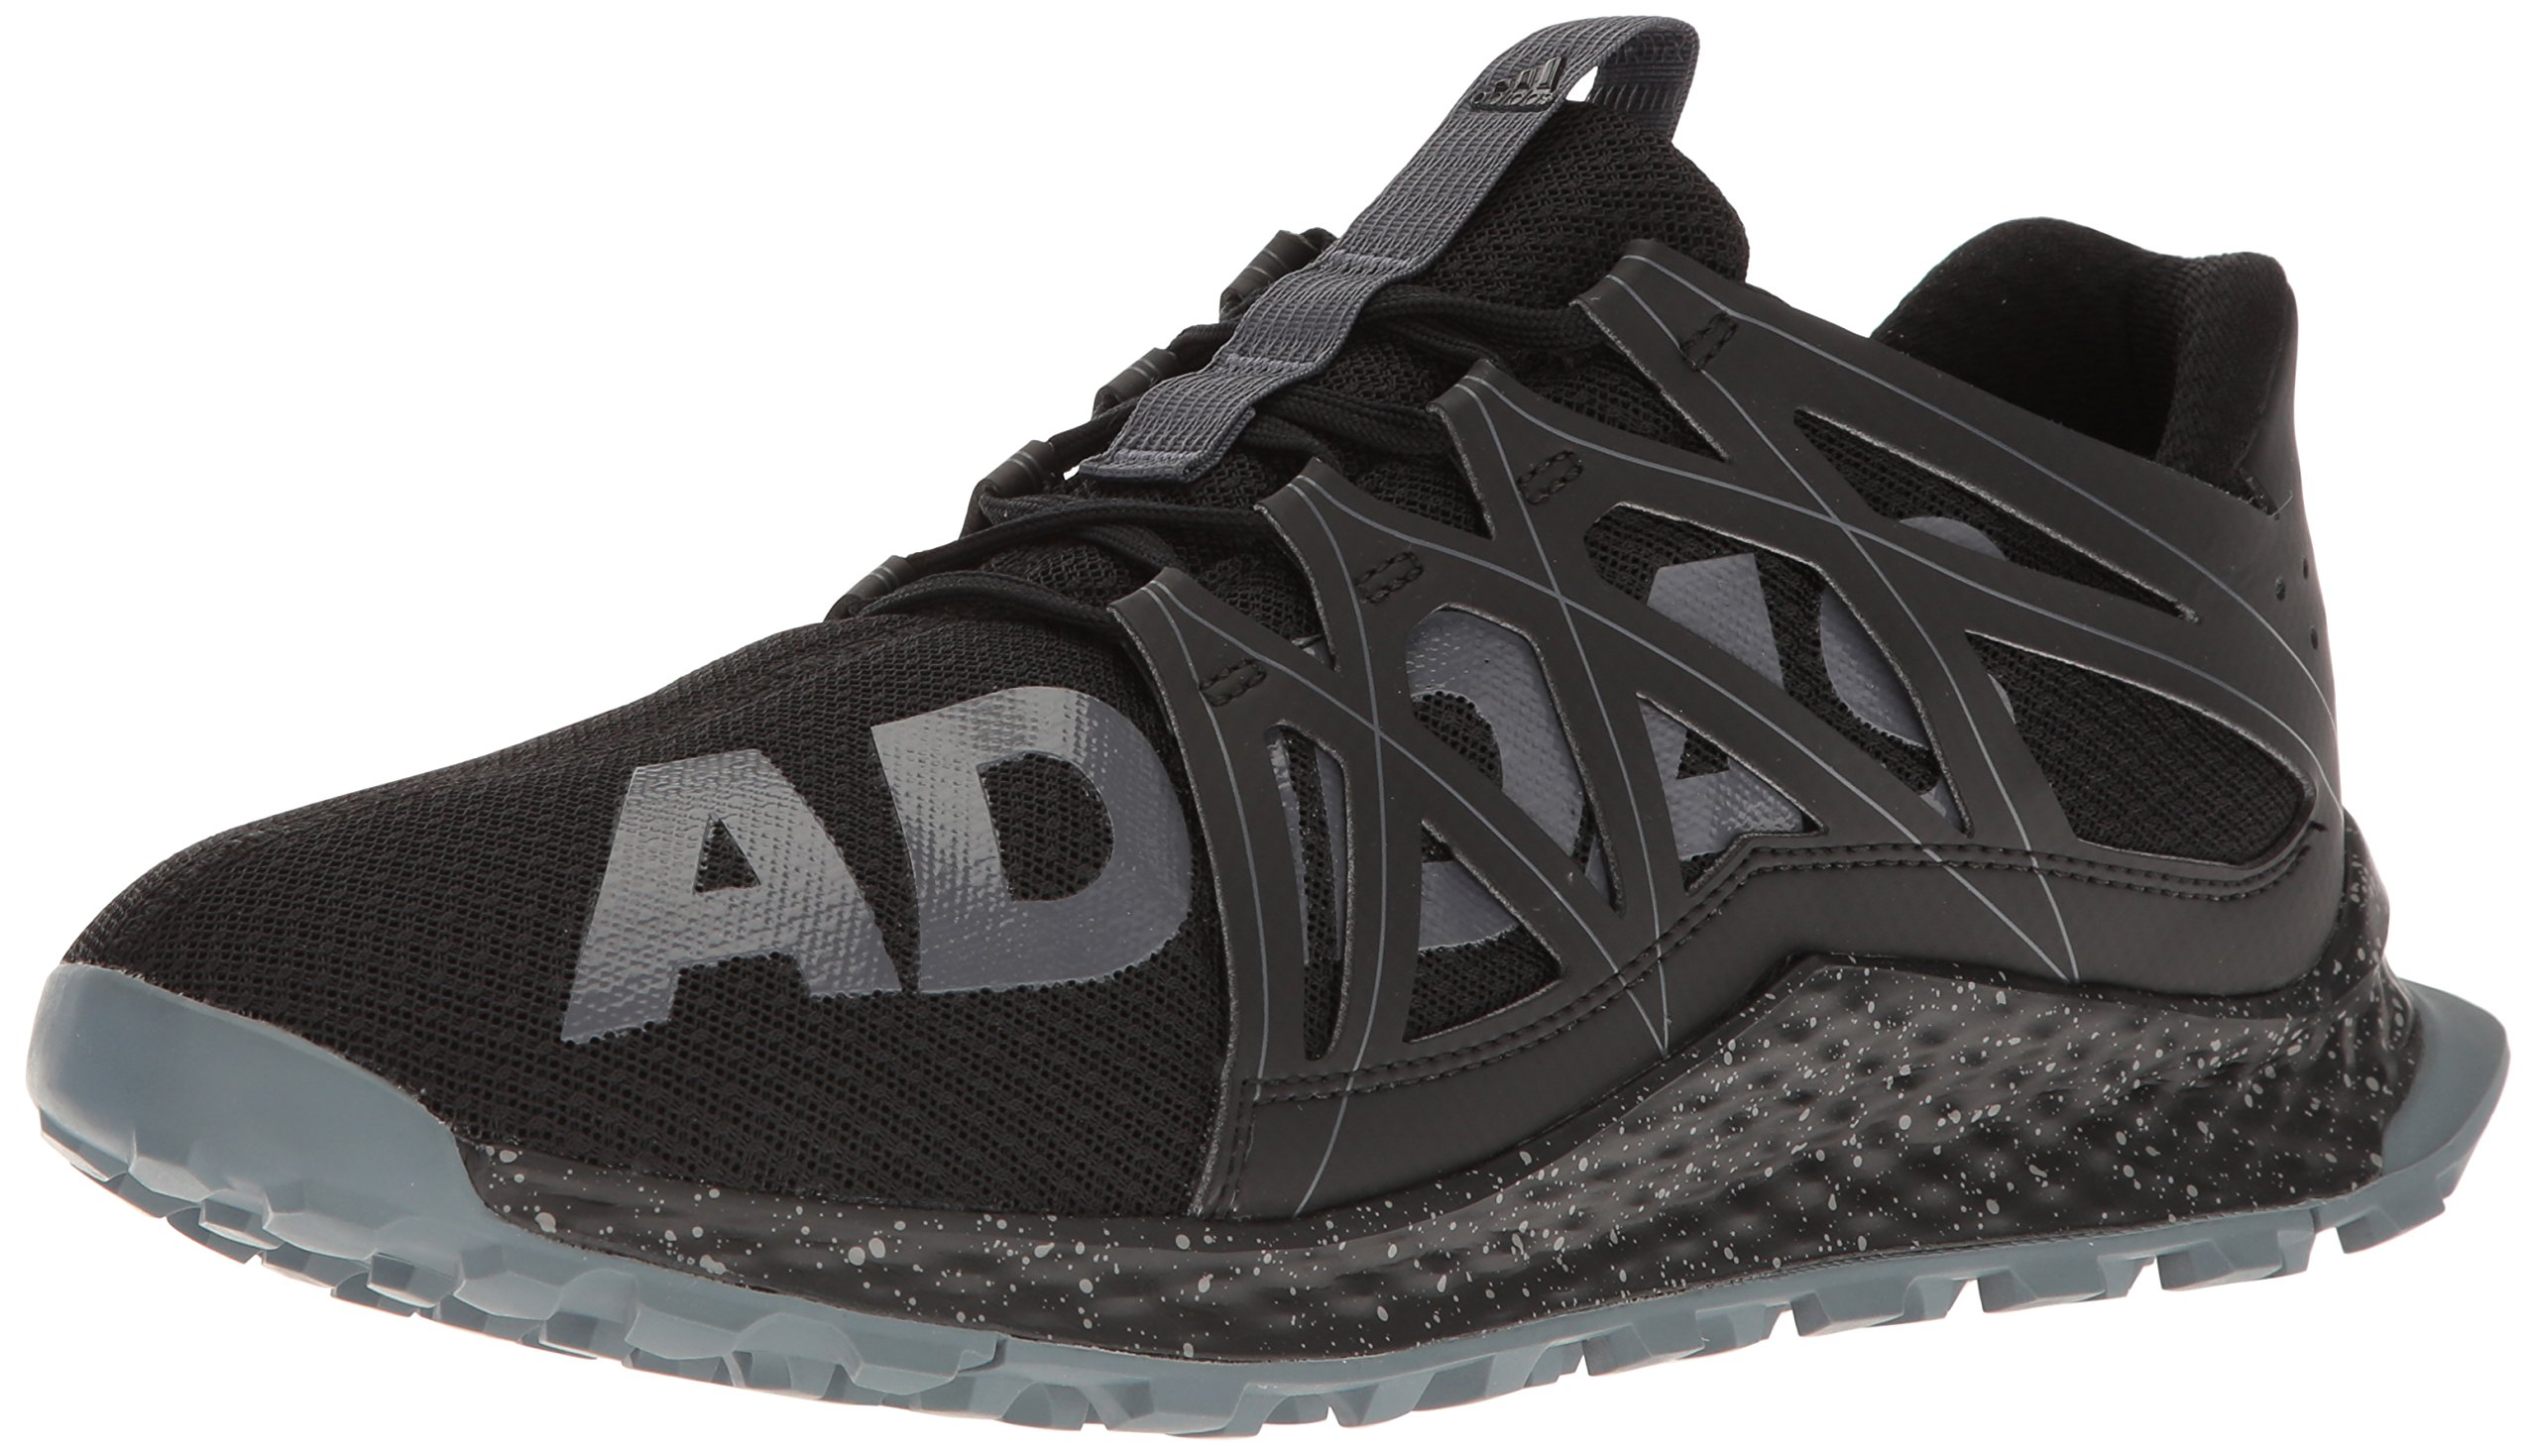 adidas Men's Vigor Bounce m Trail Runner, Black/Onix/Grey, 11.5 M US